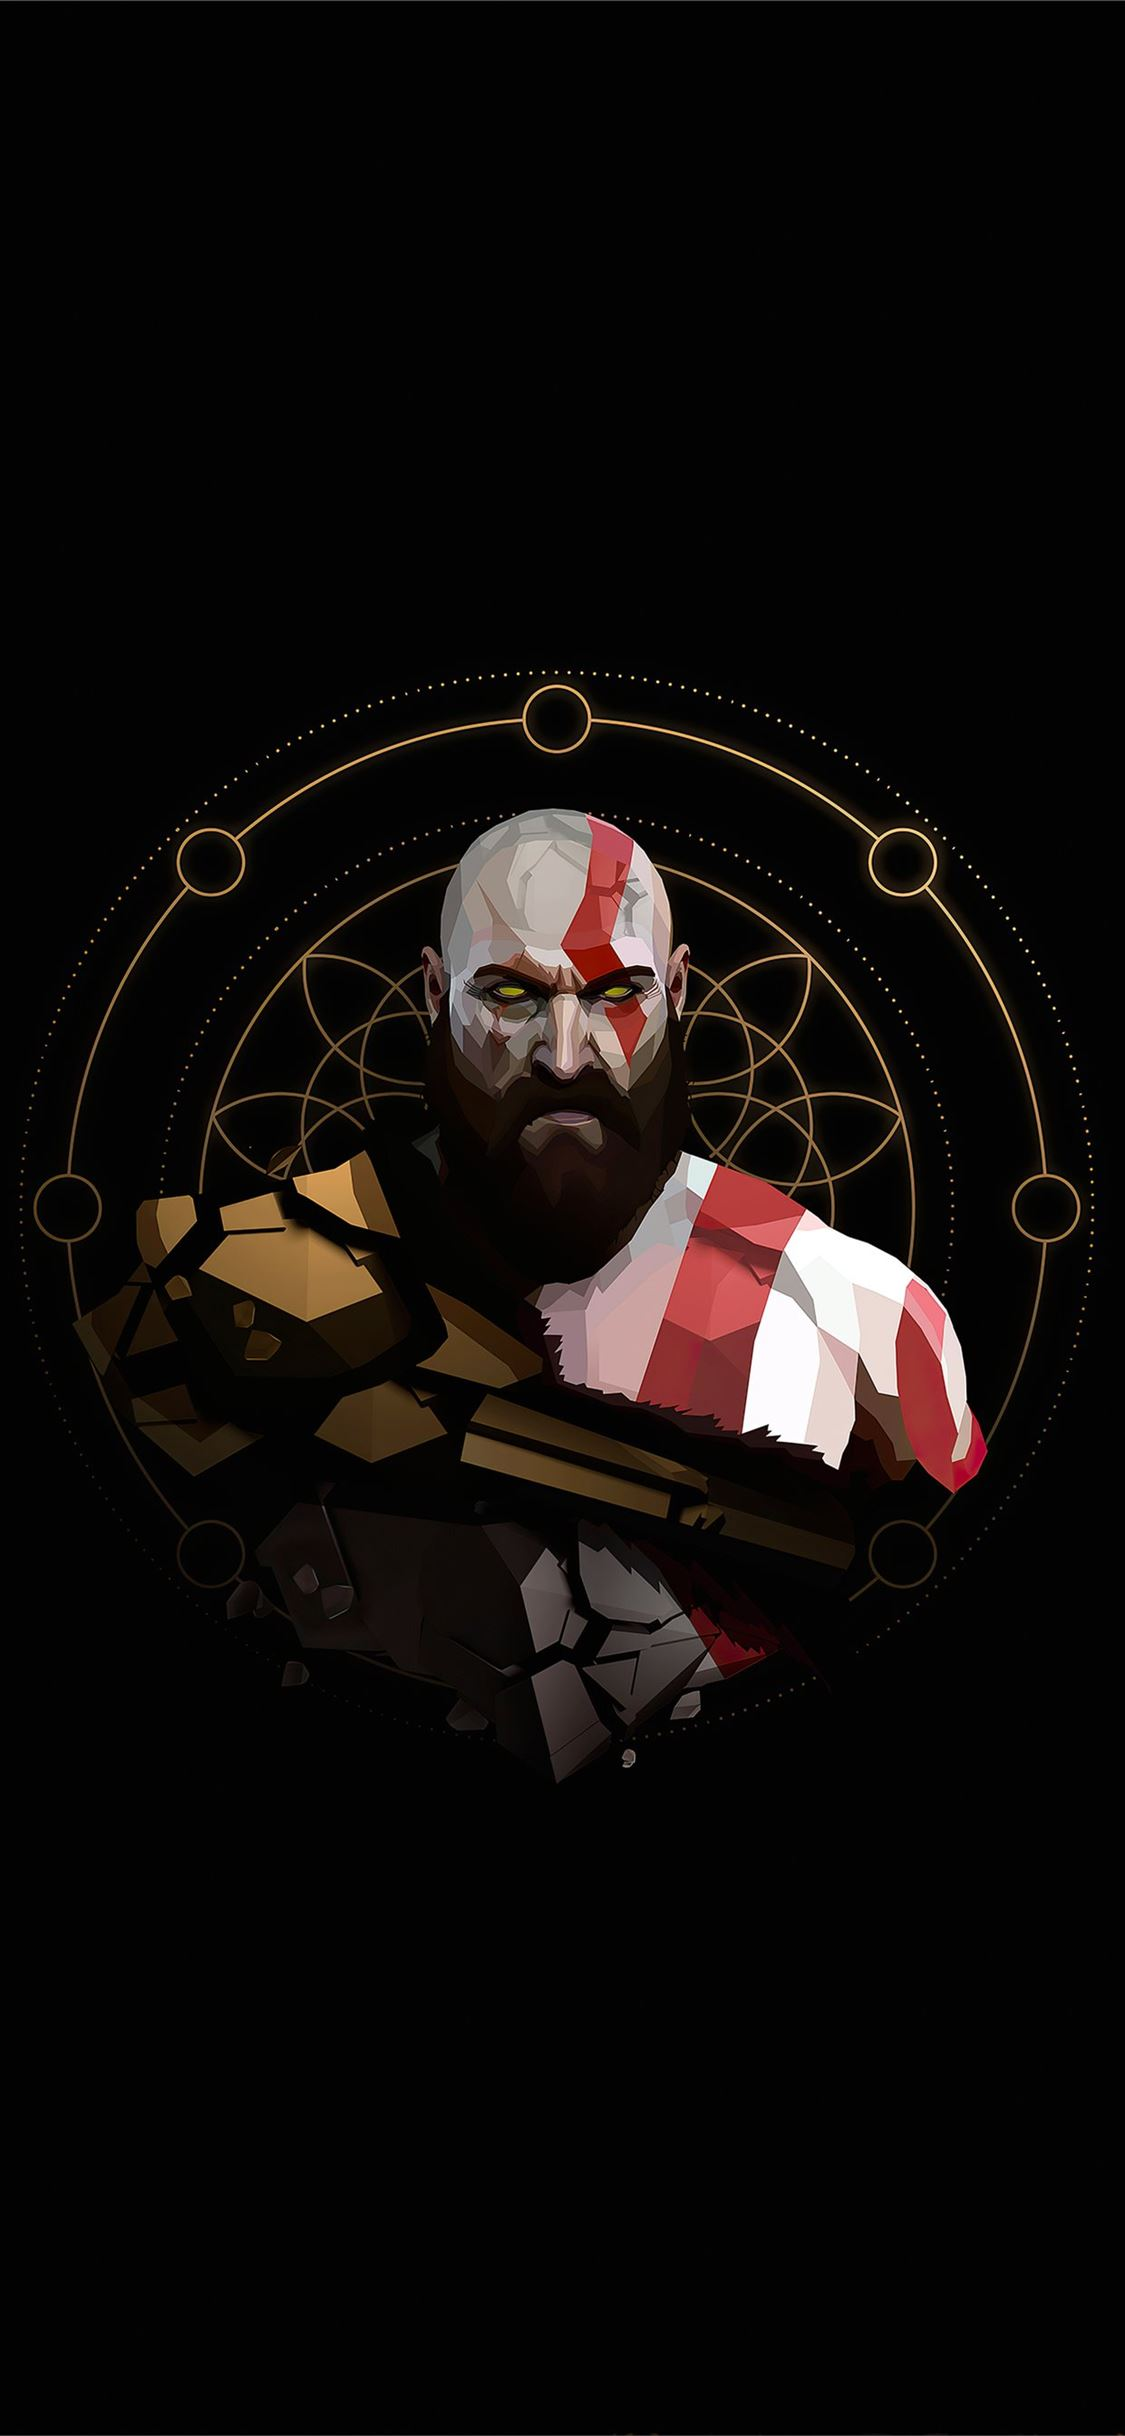 God Of War Iphone X Hd Wallpapers Ilikewallpaper